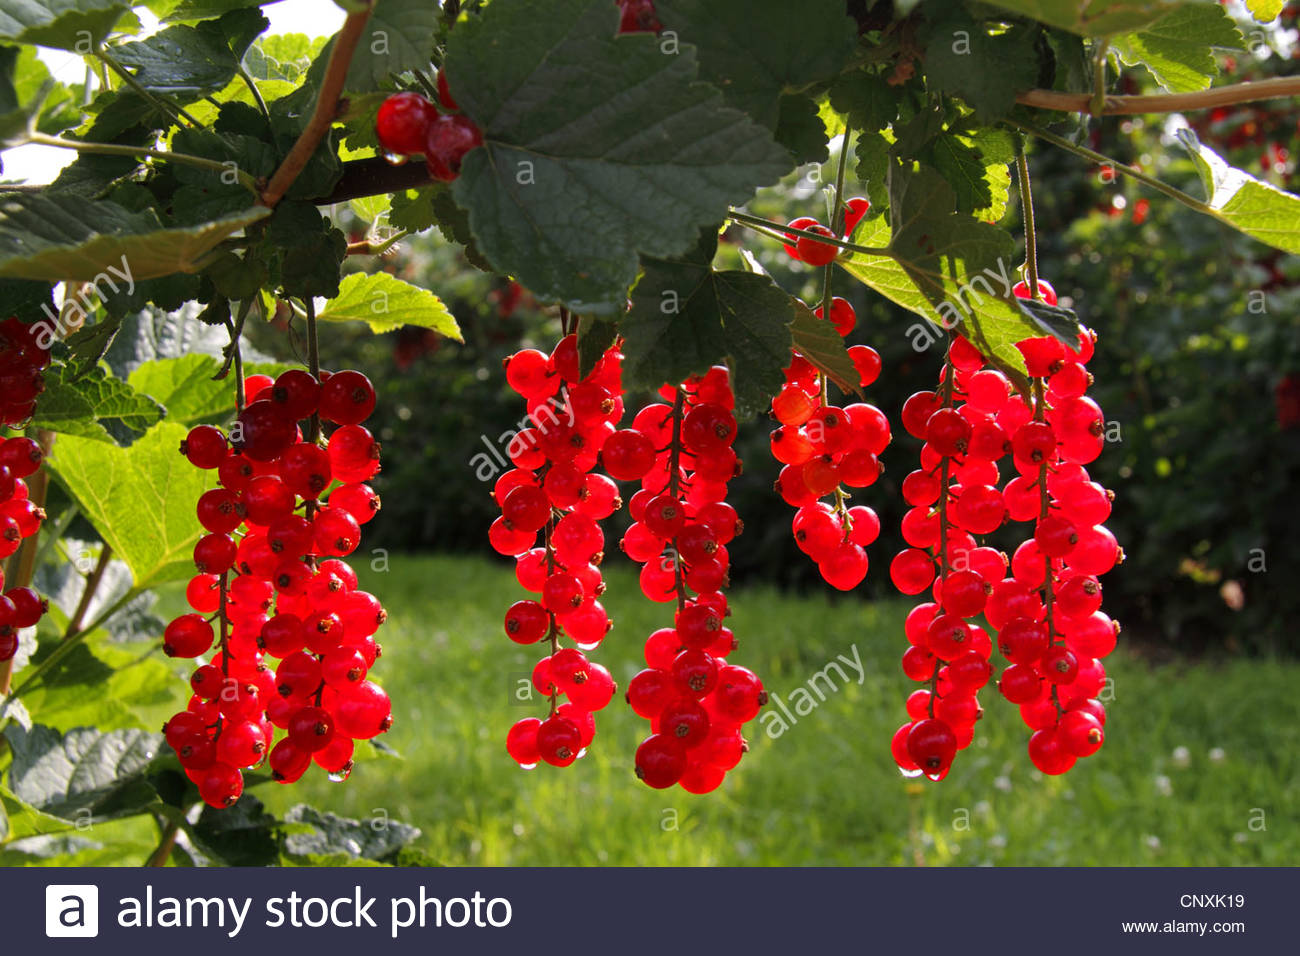 Northern Red Currant (ribes Rubrum), Fruits At The Bush In.